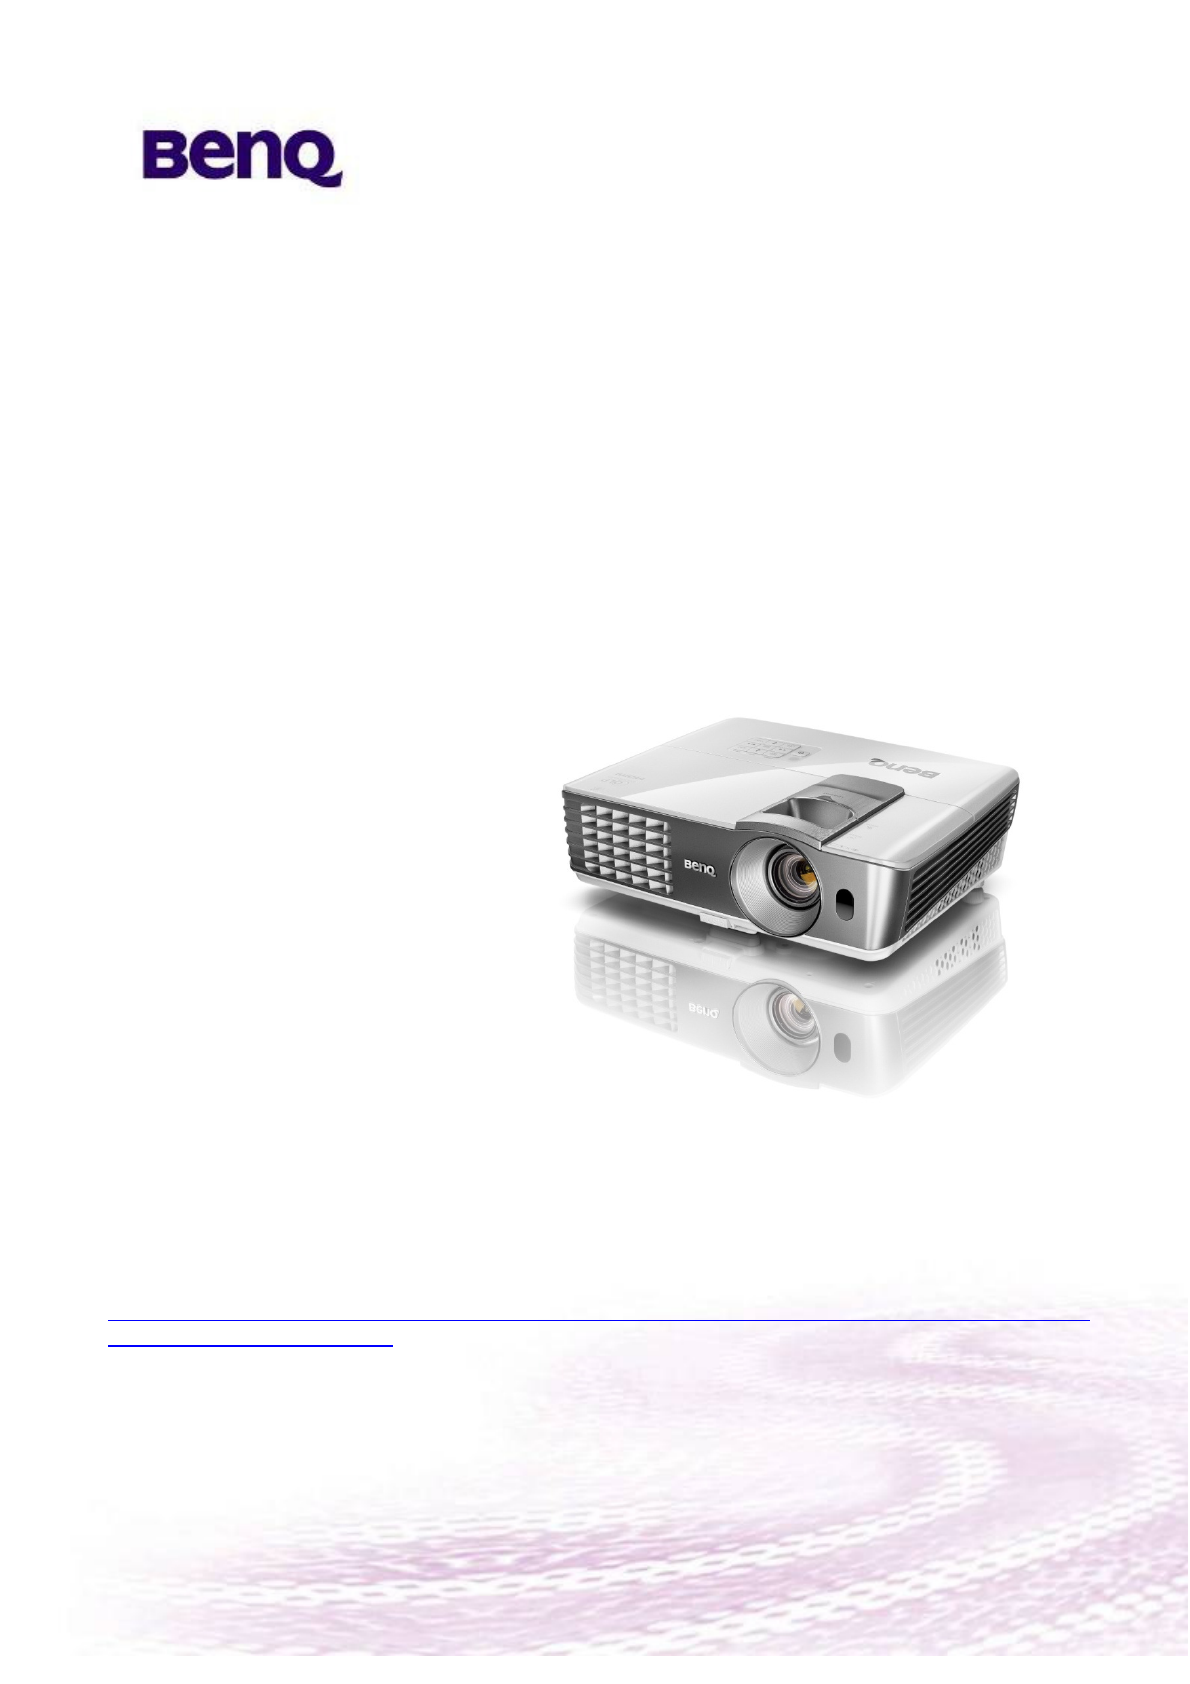 Mh741 user manual support | benq europe.